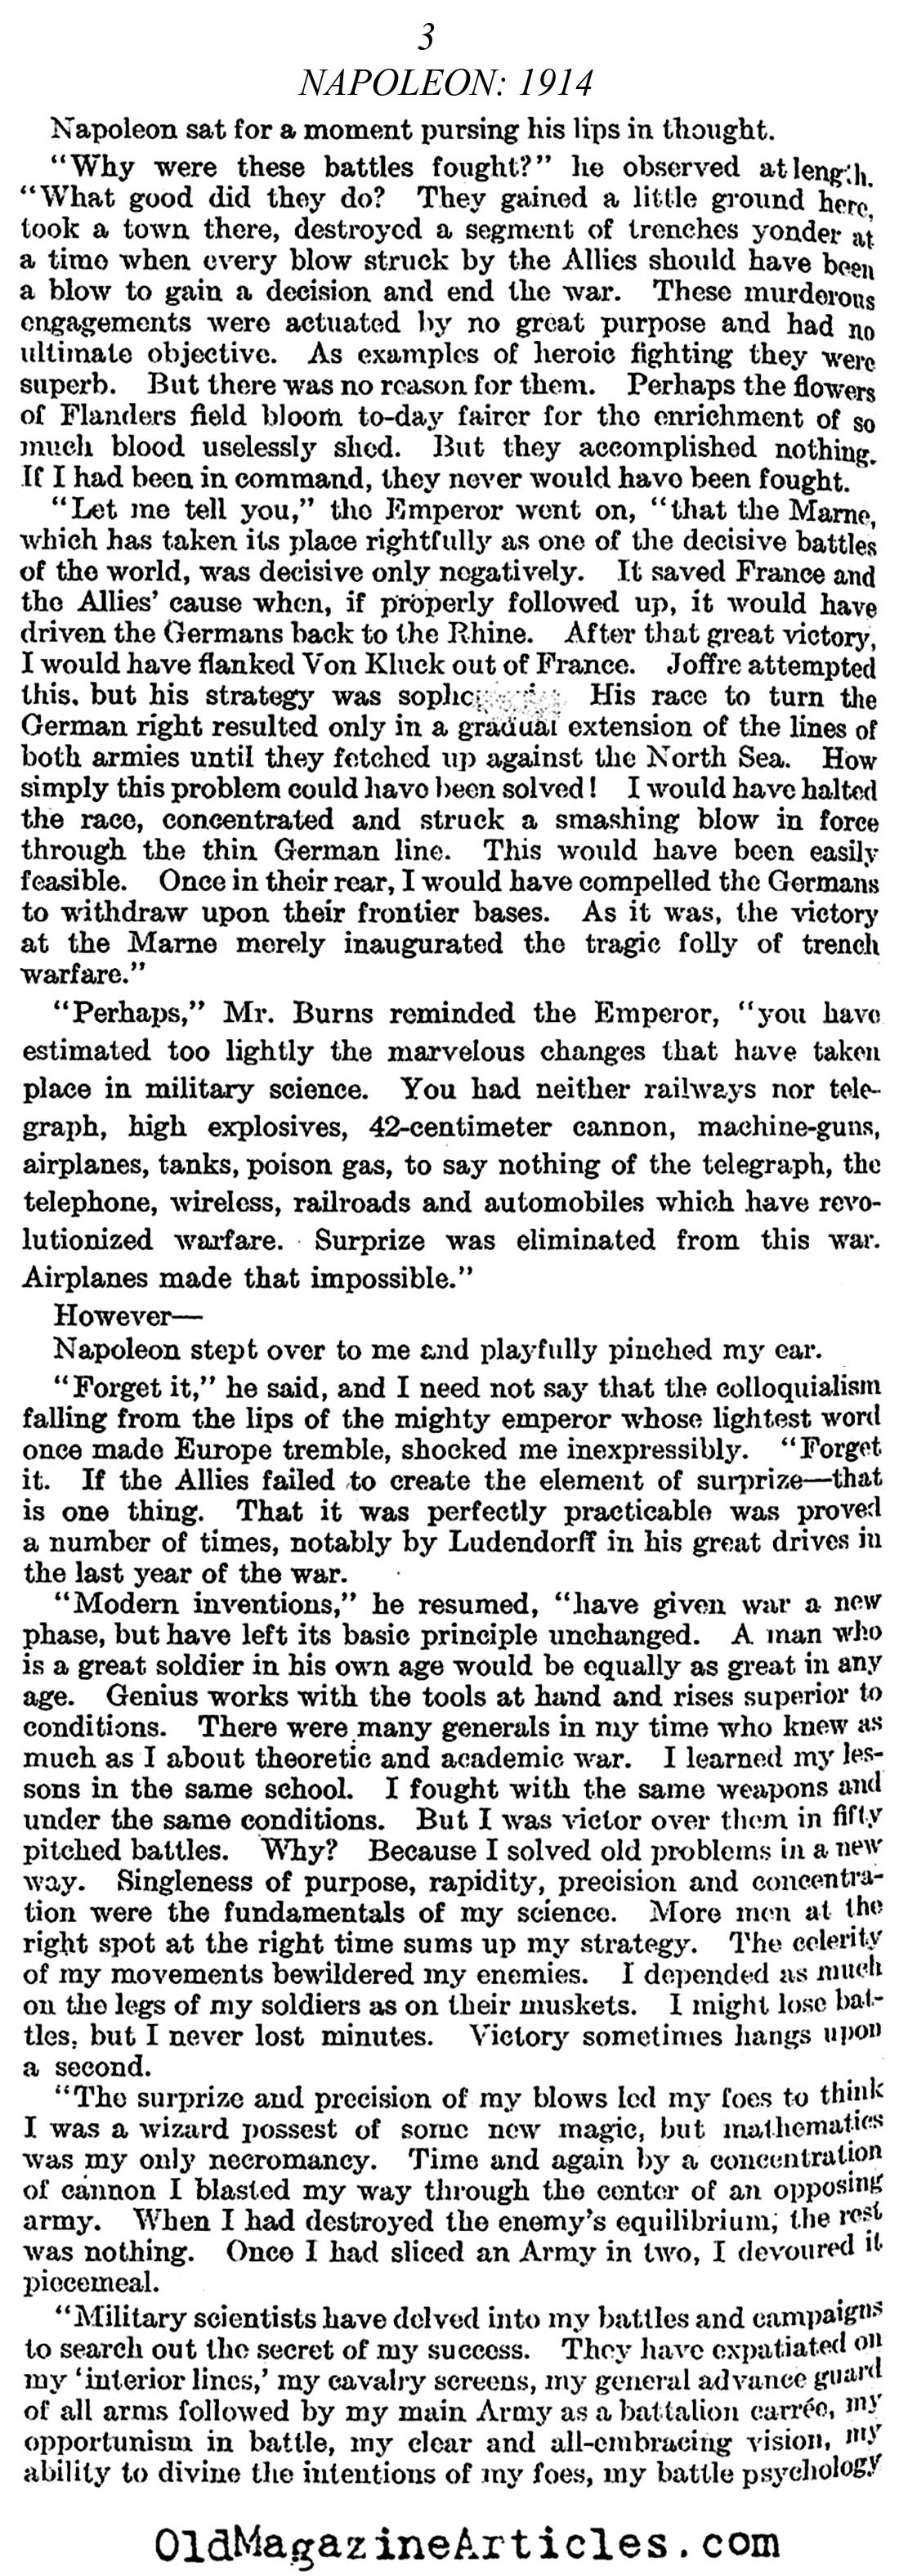 Napoleon Takes Charge (Literary Digest, 1922)